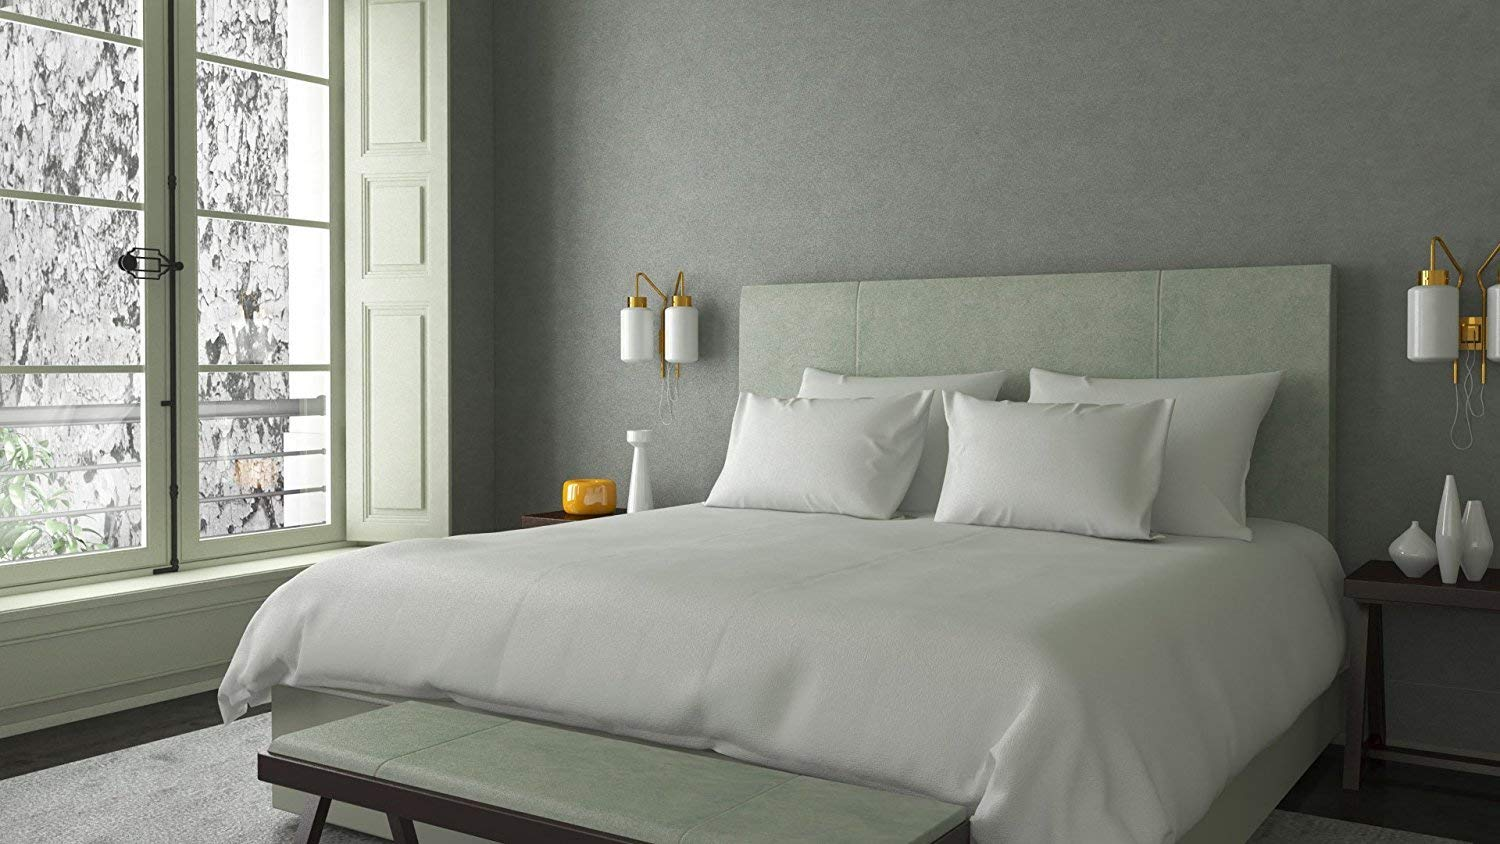 Image of Moonstone's 1000 Thread Count 100% Cotton Sheet Set - Best 1000 Thread Count Sheets